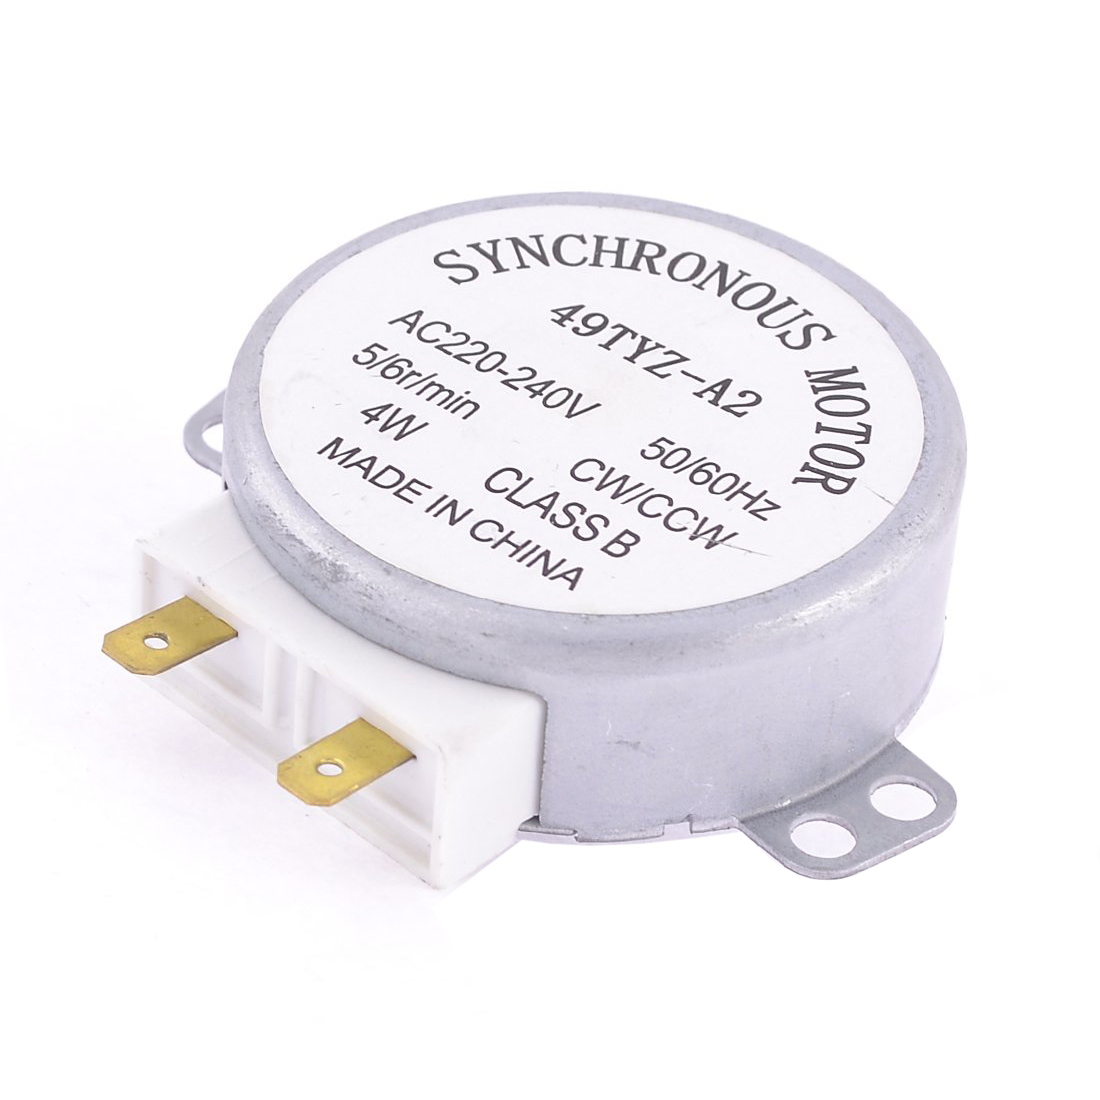 Promotion! Microwave Oven Turntable Synchronous Motor CW/CCW 4W 5/6RPM AC 220-240V new arrival synchronous synchron motor 50 60hz ac 100 127v 4w 5 6rpm ccw cw